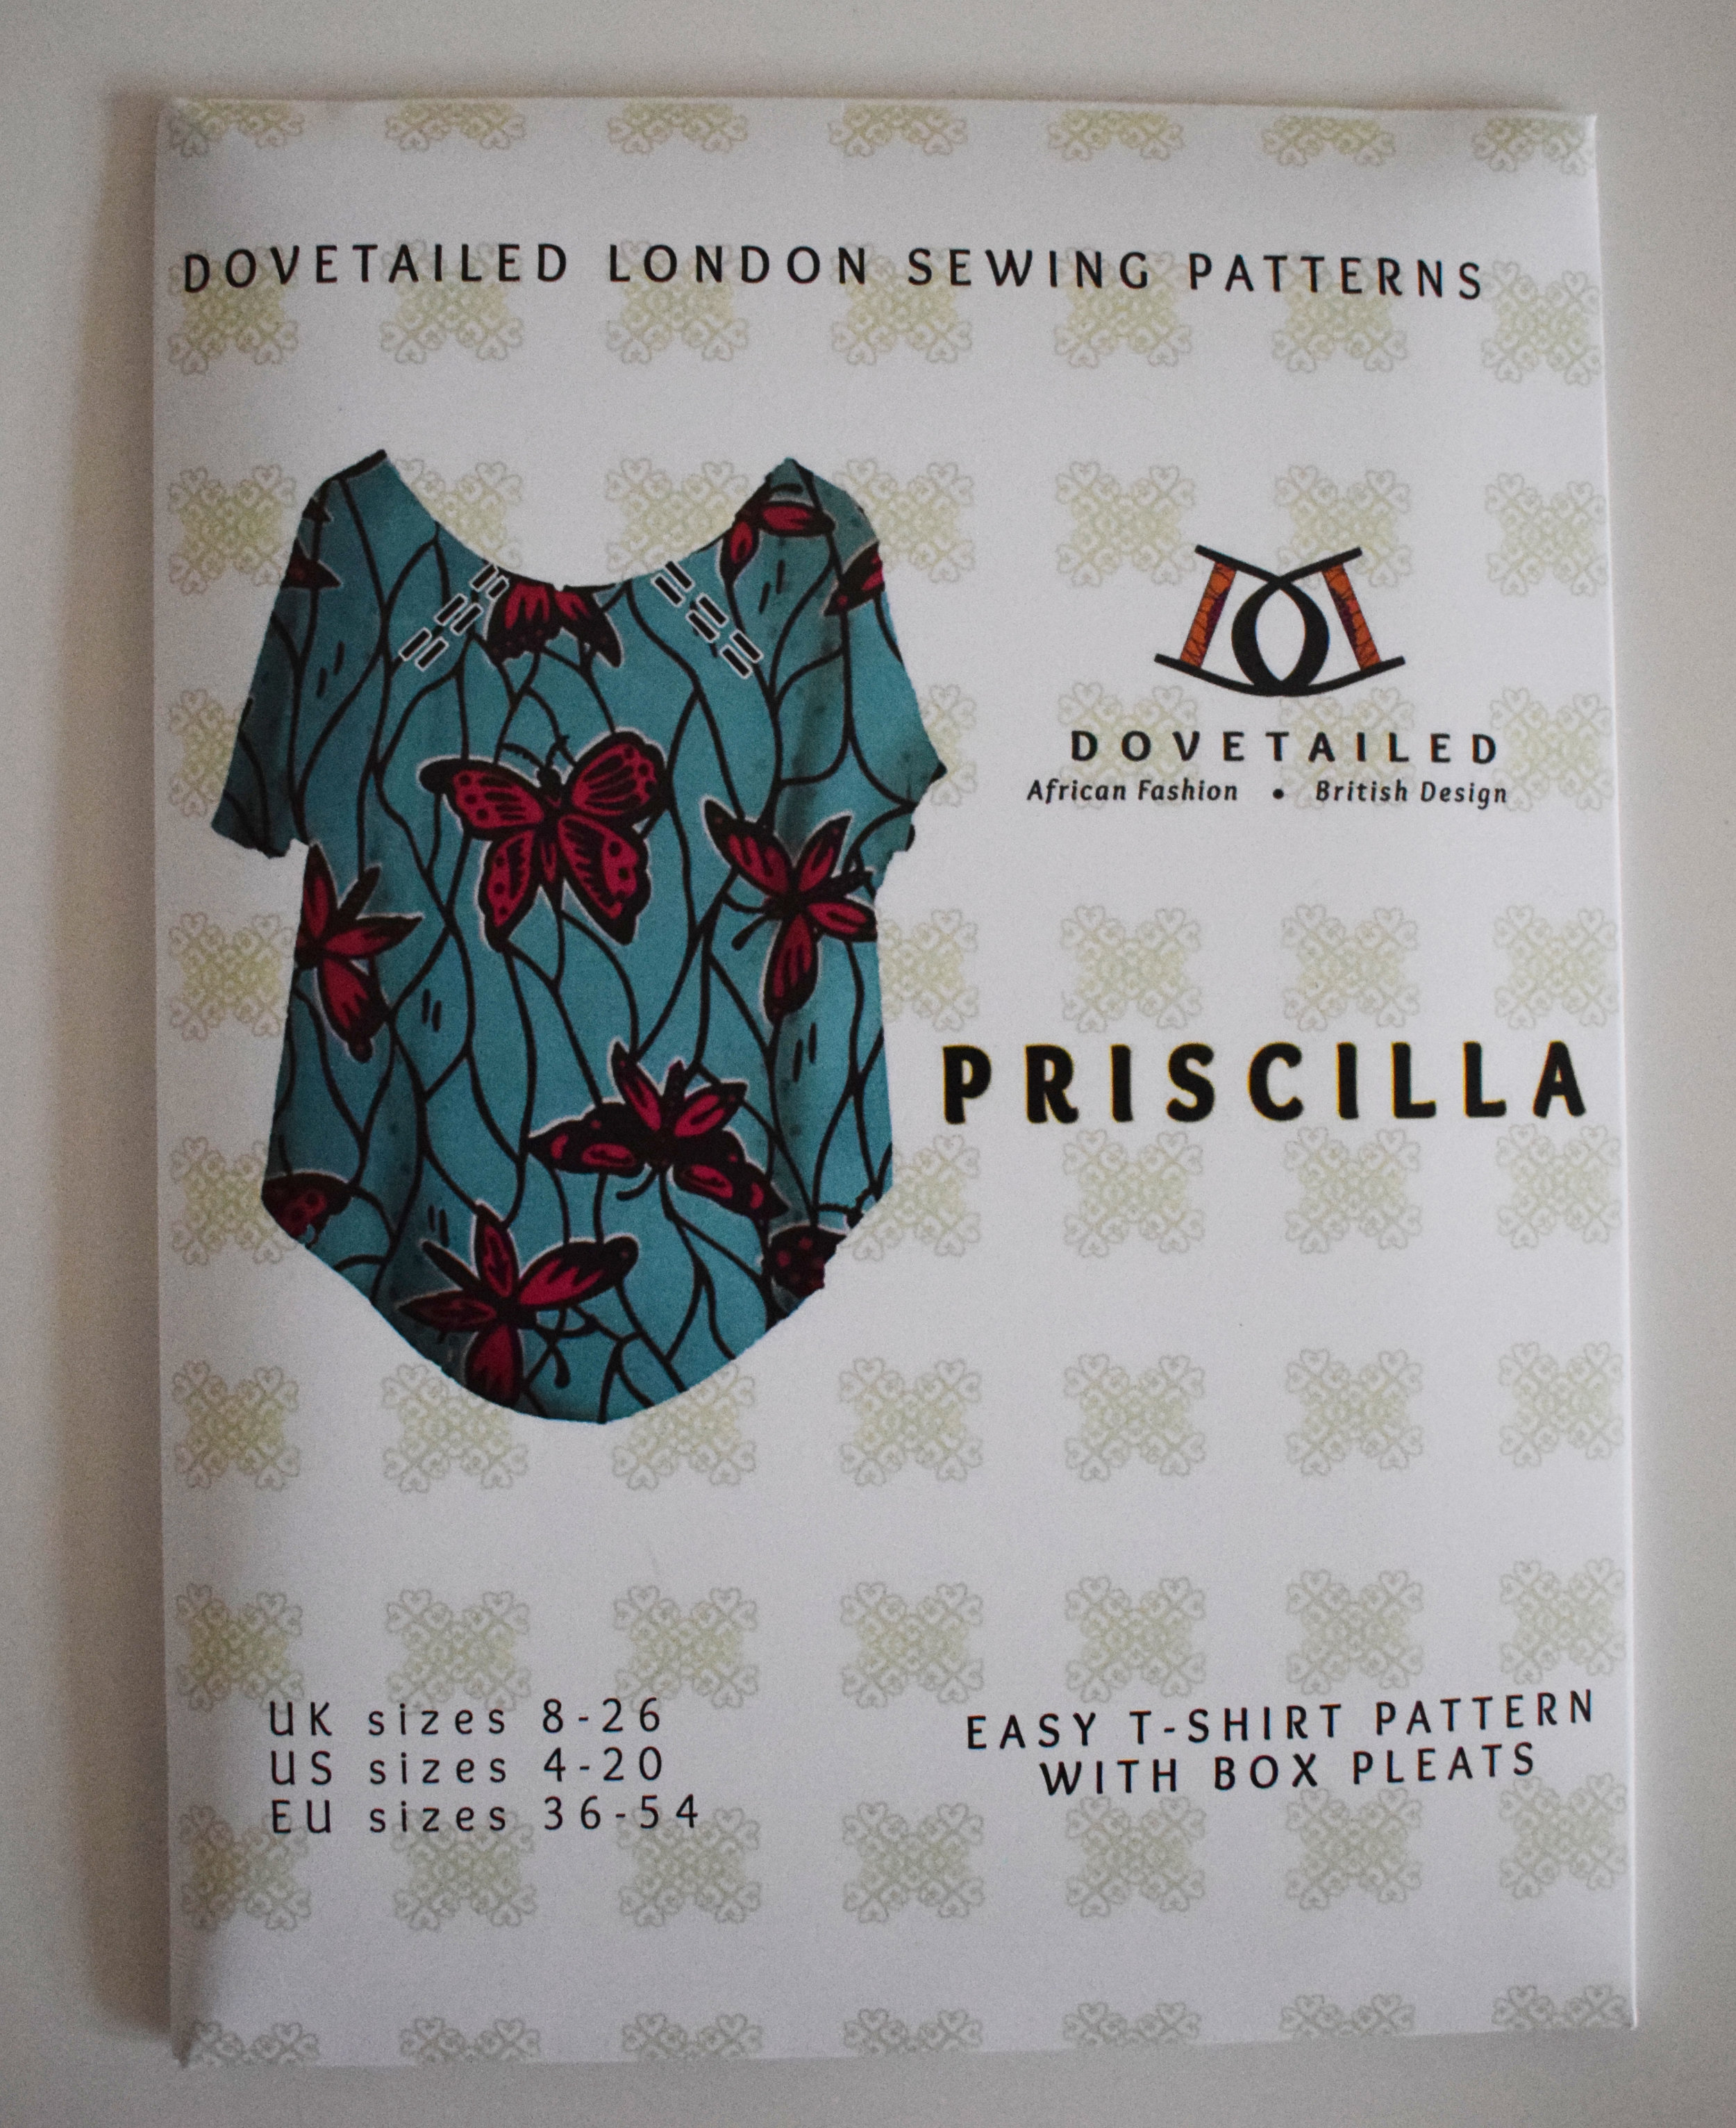 Priscilla Top sewing pattern from Dovetailed